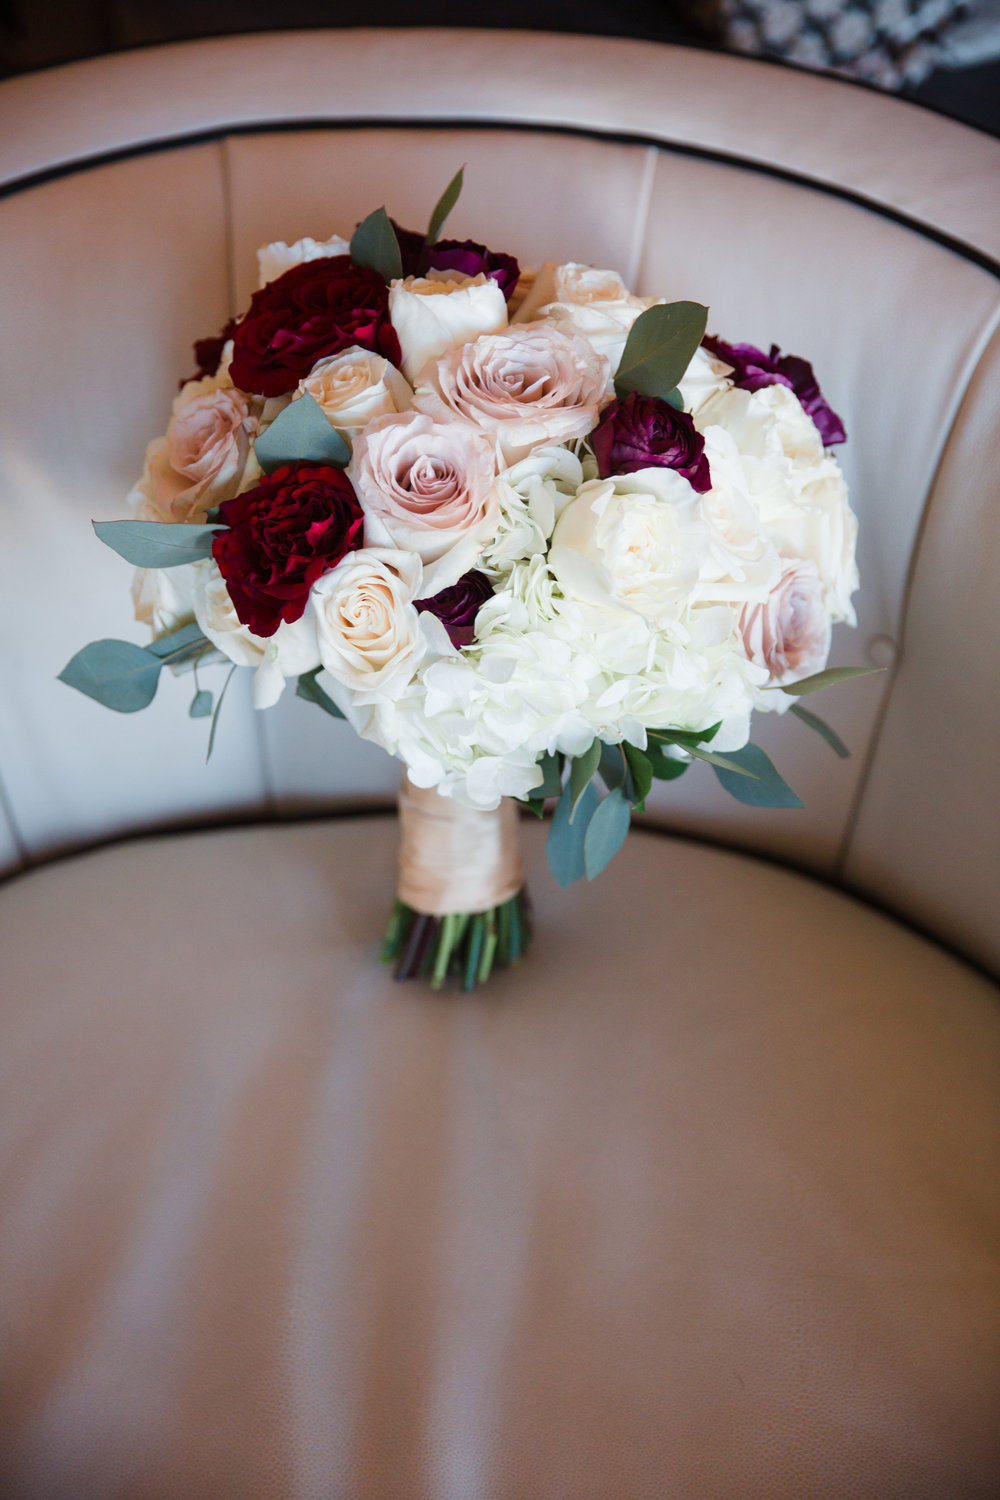 Deep Red and Blush Wedding Bouquet.  Luxury wedding at the Mandarin Oriental with a color scheme of white, blush, and pops of wine red produced by Las Vegas Wedding Planner Andrea Eppolito with photos by Stephen Salazar Photography.